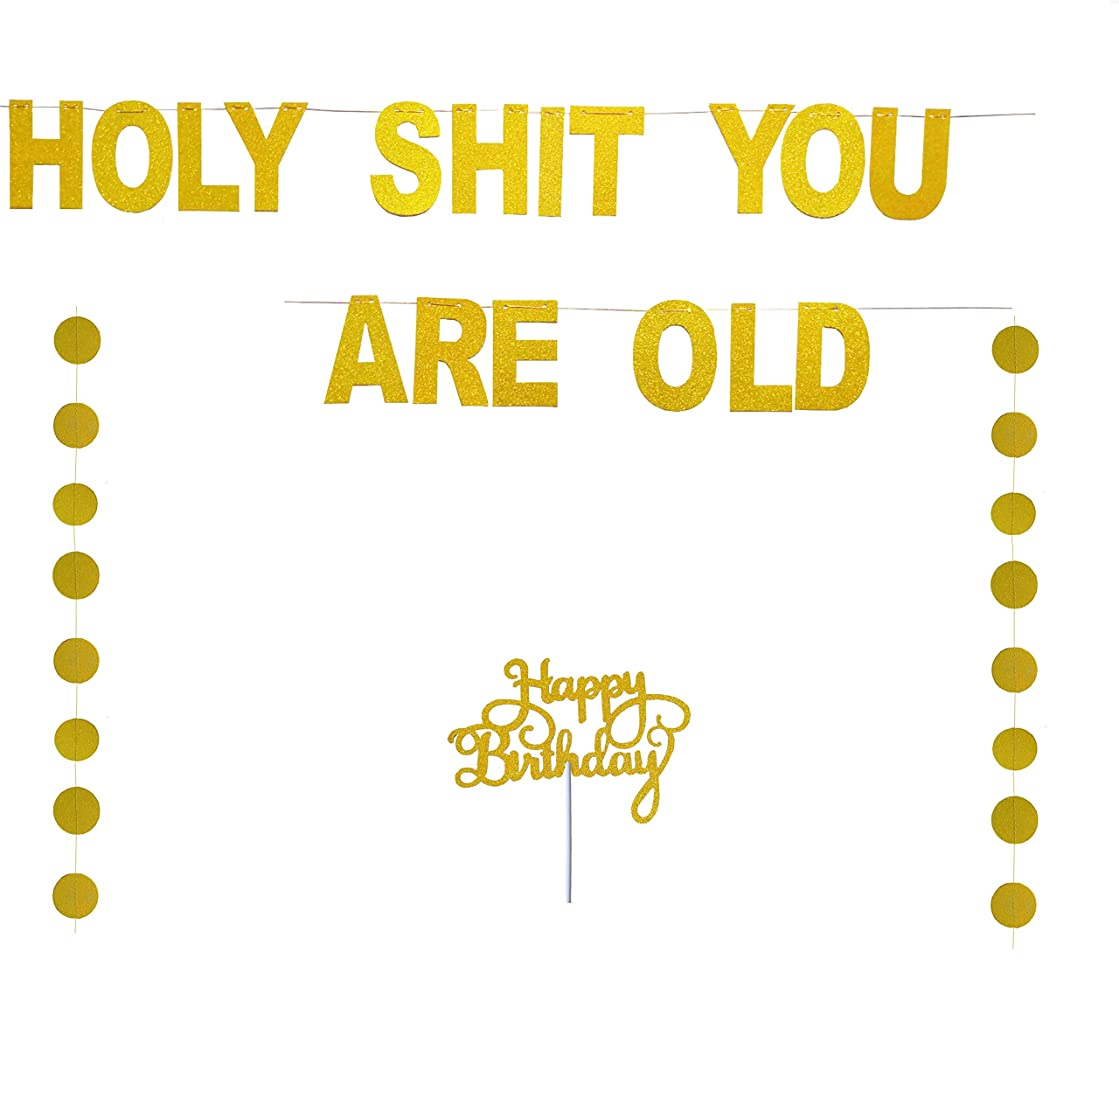 Holy Shit You are Old Birthday Party Decorations,Funny Birthday Banner,Gold Glitter Banner for Adult Happy Birthday Cake Topper-7.8 Feet